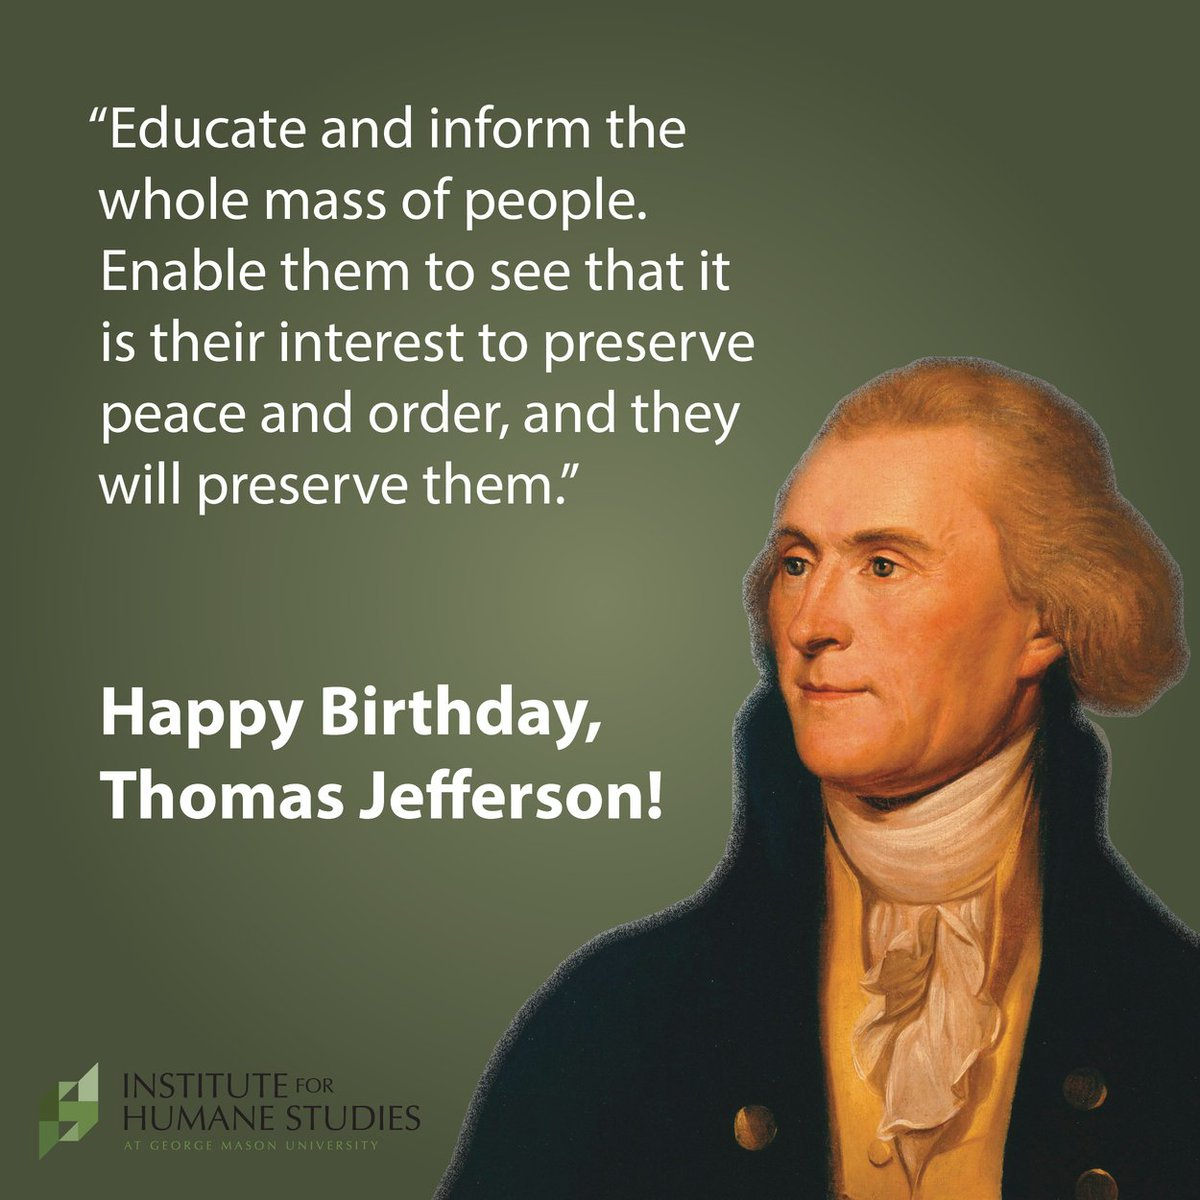 Happy birthday, Thomas Jefferson! #HappyBirthday https://t.co/l7laTxkD3U